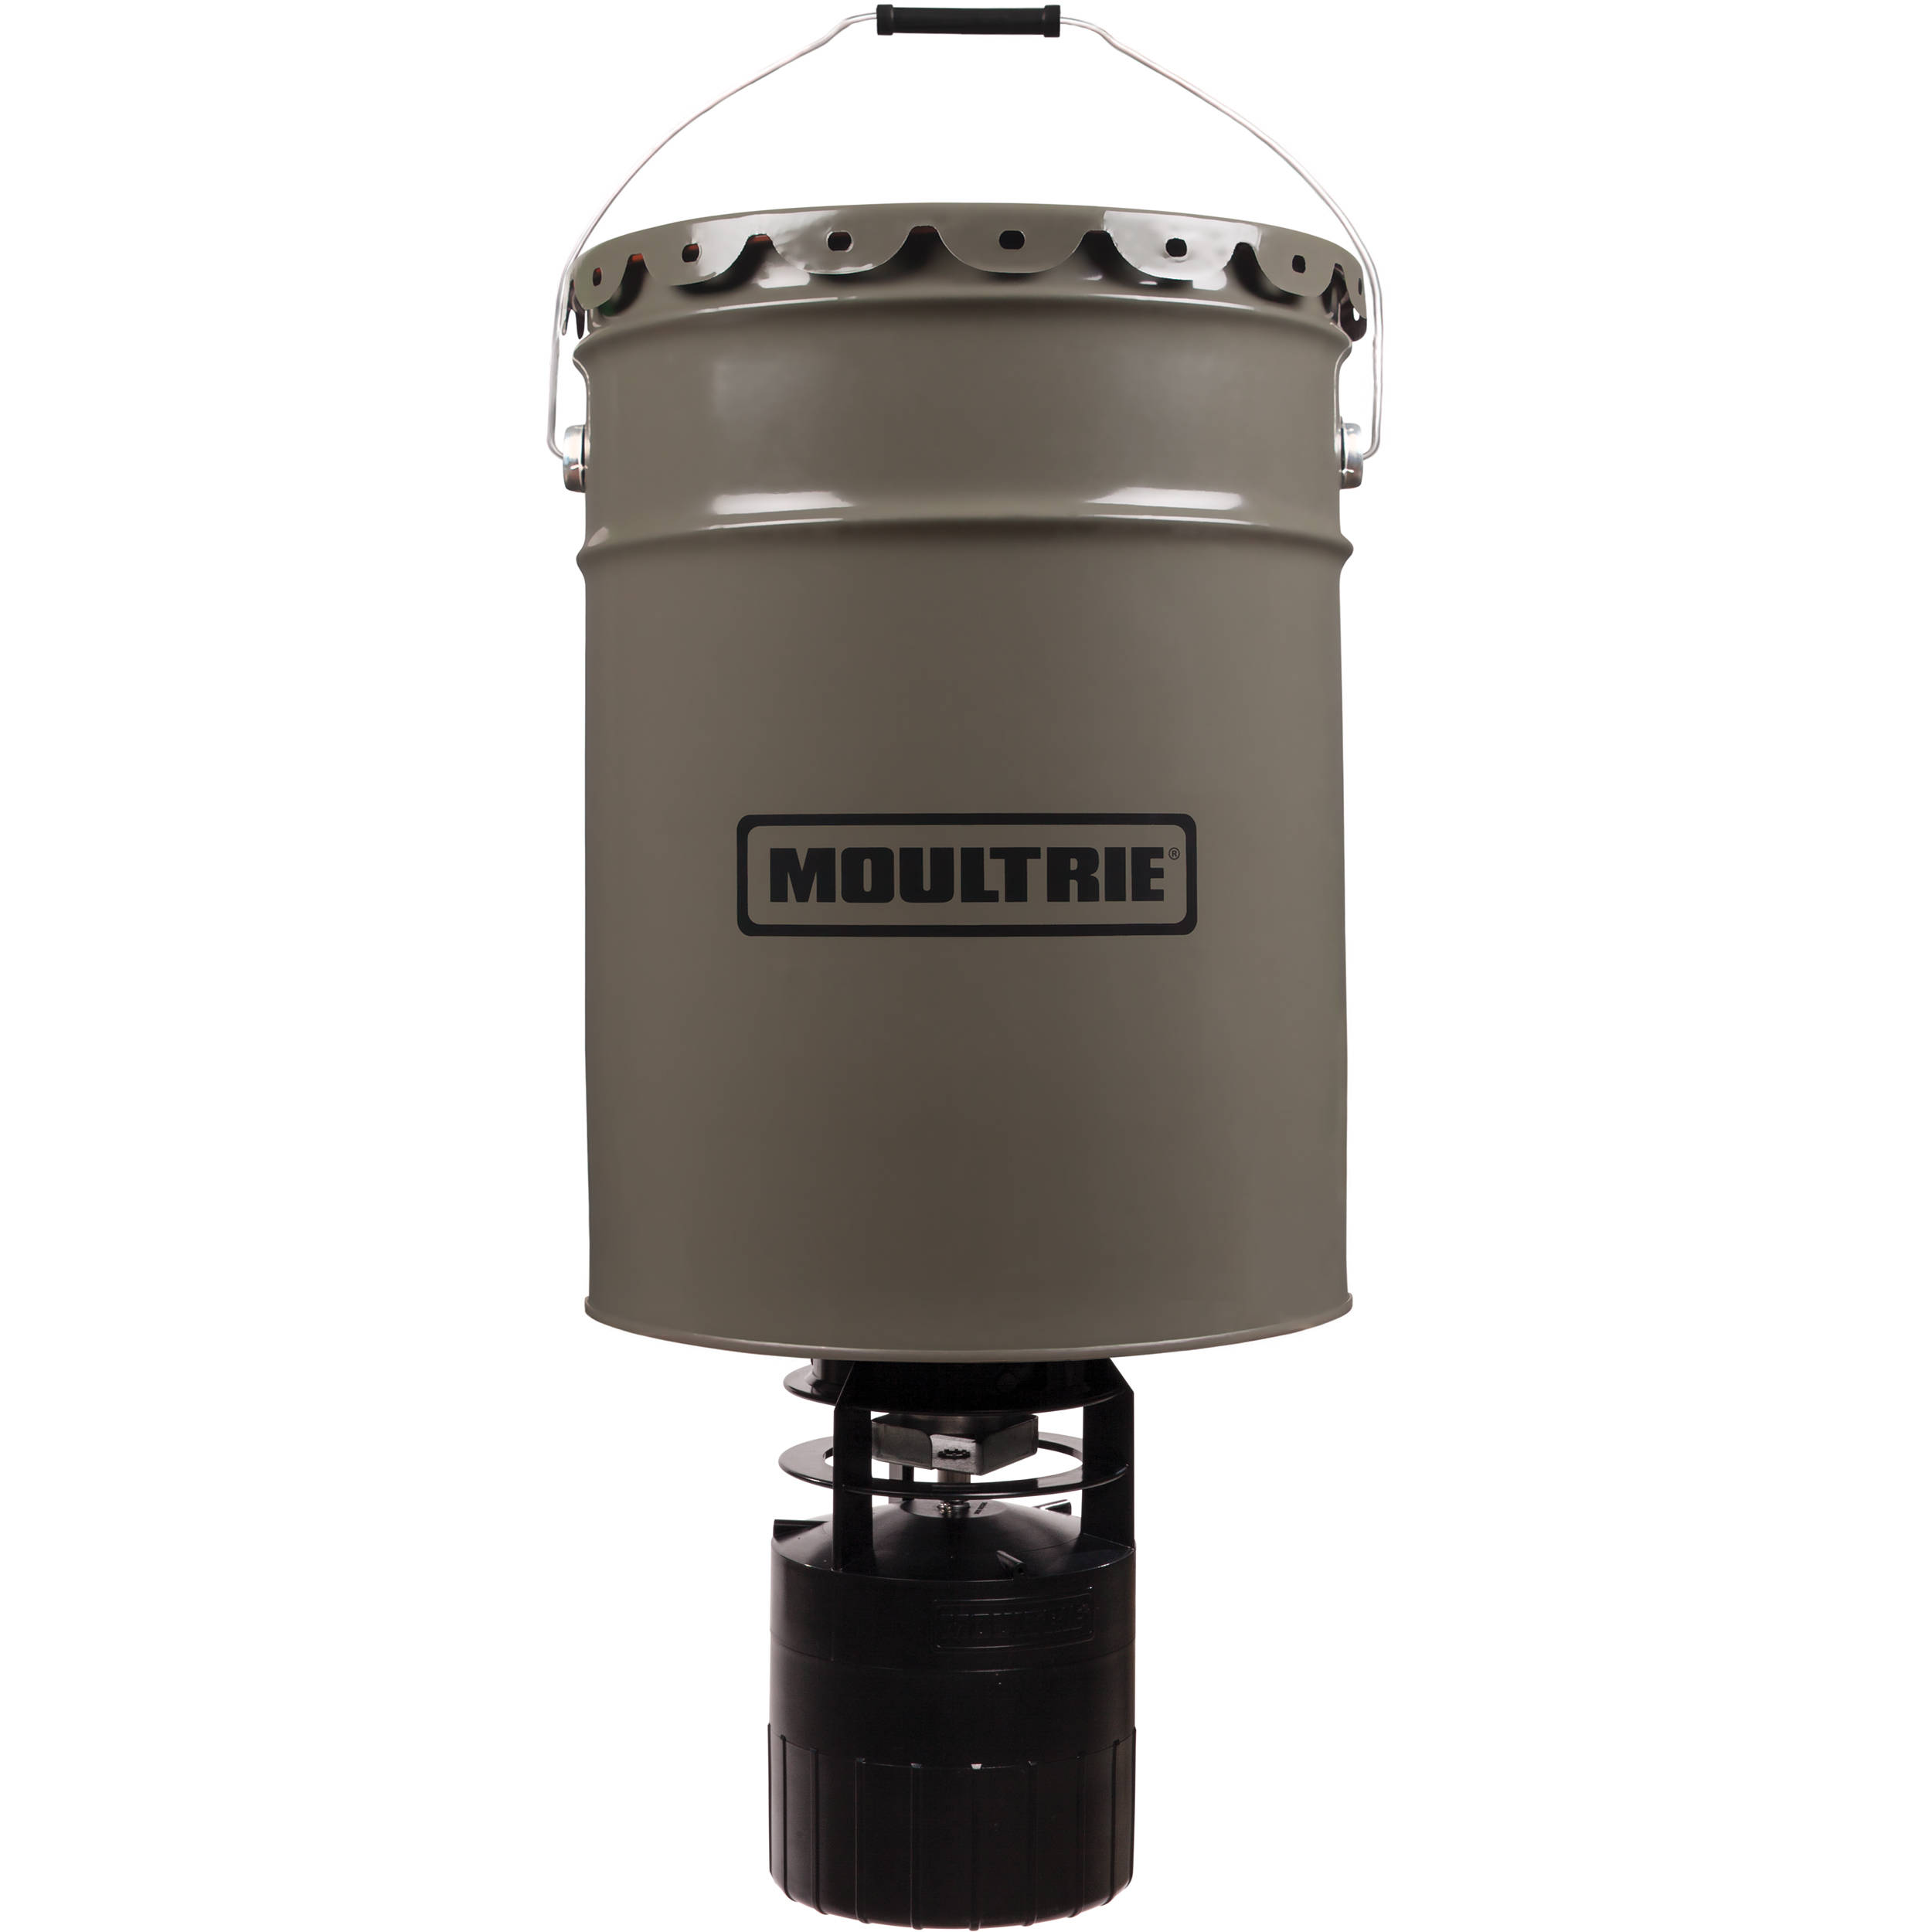 moultrie 6 5 gallon pro hunter hanging deer feeder mfg 13058 b h rh bhphotovideo com Texas Deer Feeders Deer Trough Feeders